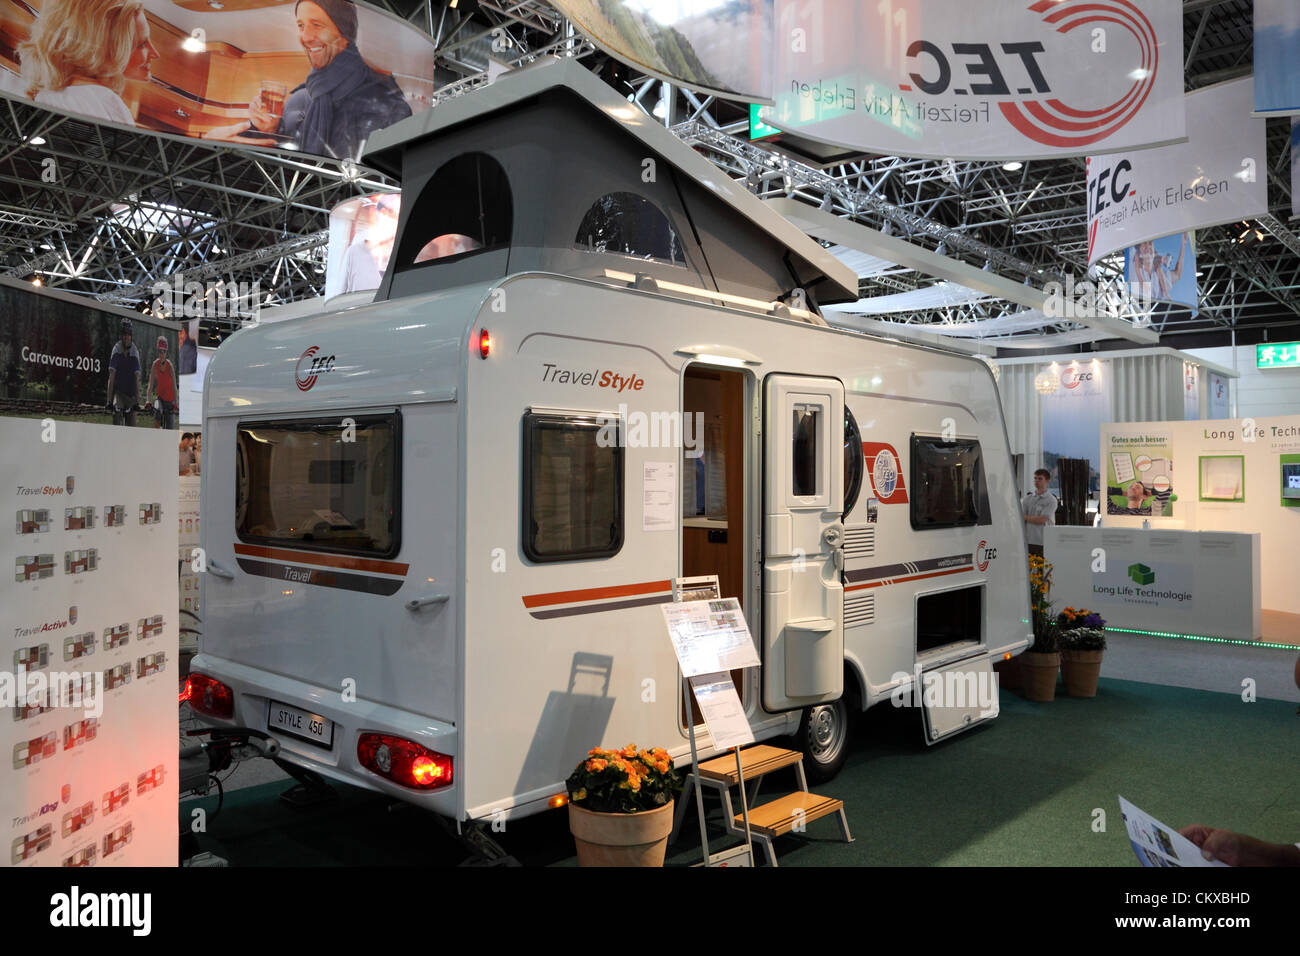 duesseldorf august 27 t e c travel style mobile home. Black Bedroom Furniture Sets. Home Design Ideas